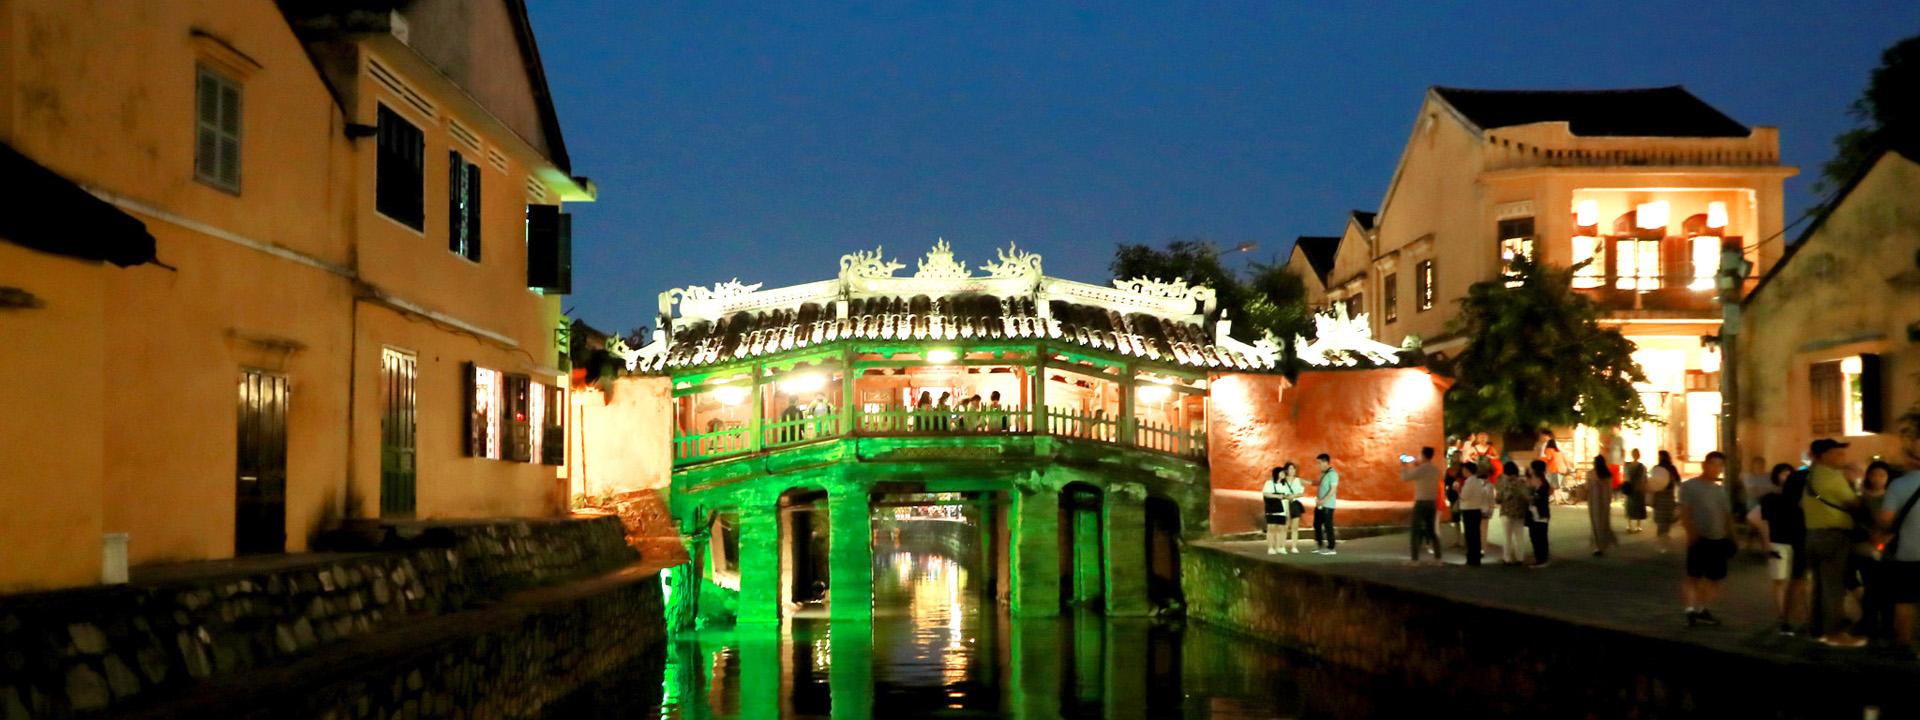 Hoian Optional Tours - Hoian Private Tours